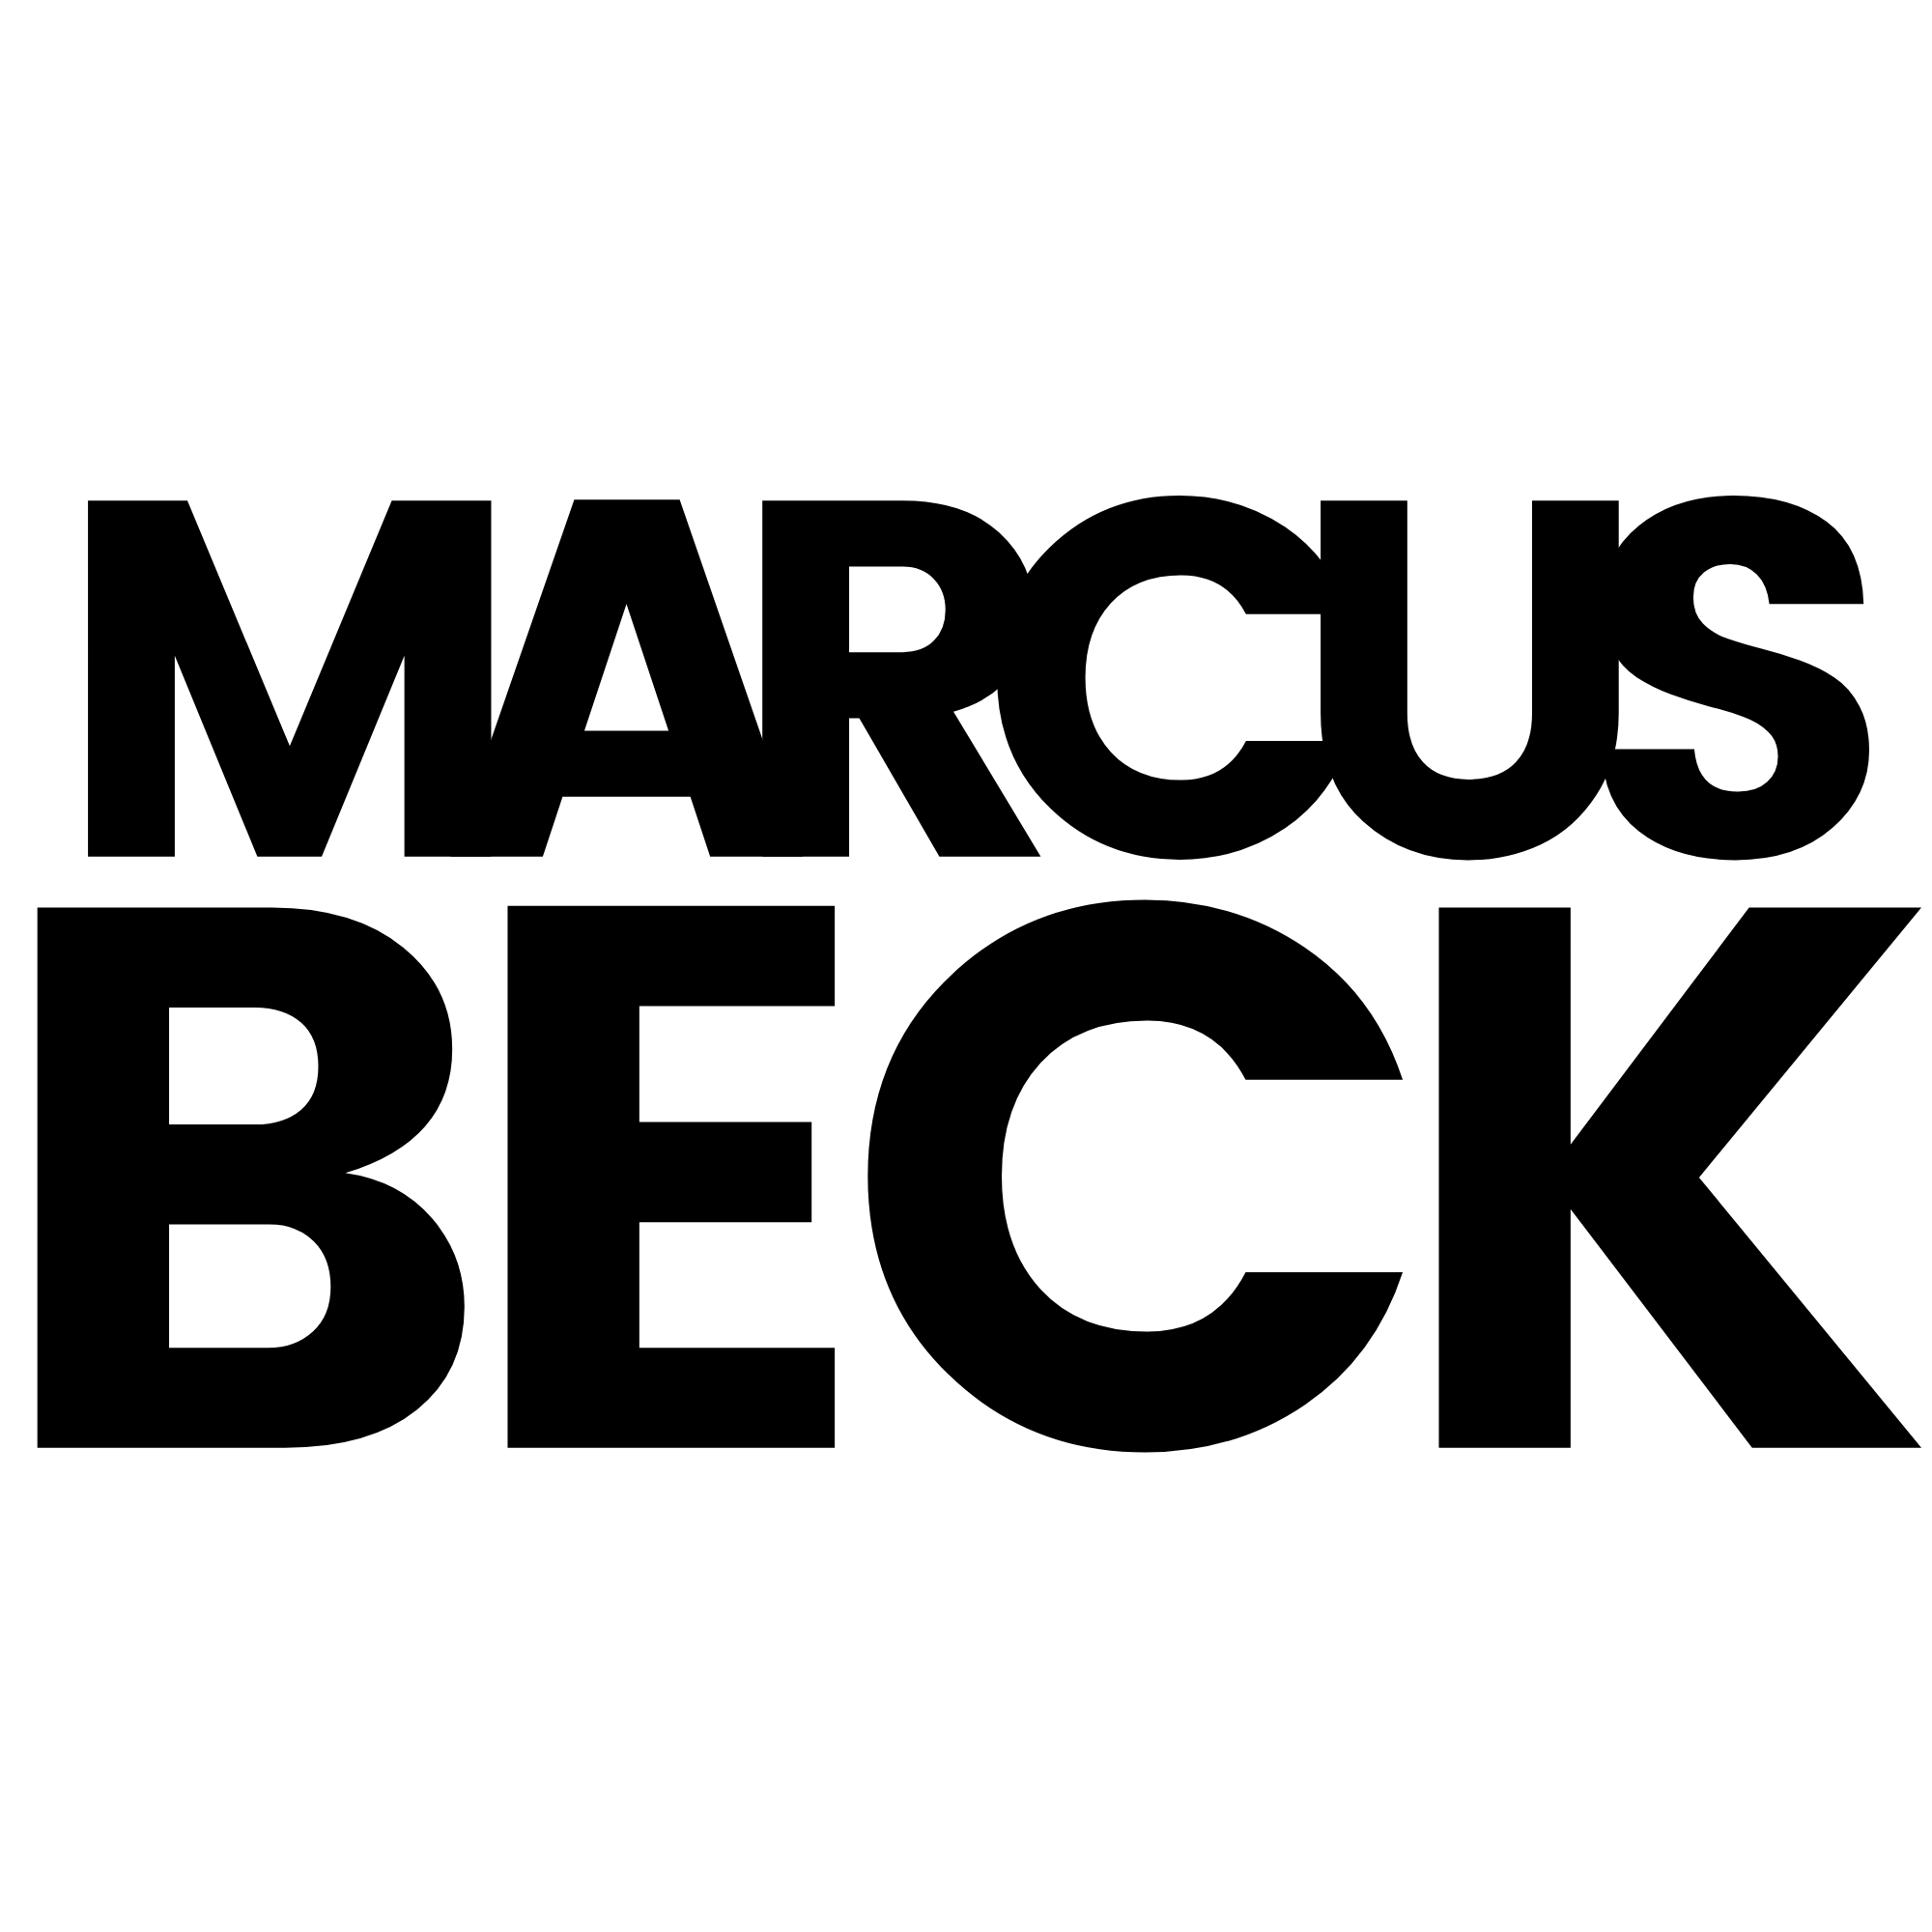 Marcus Beck